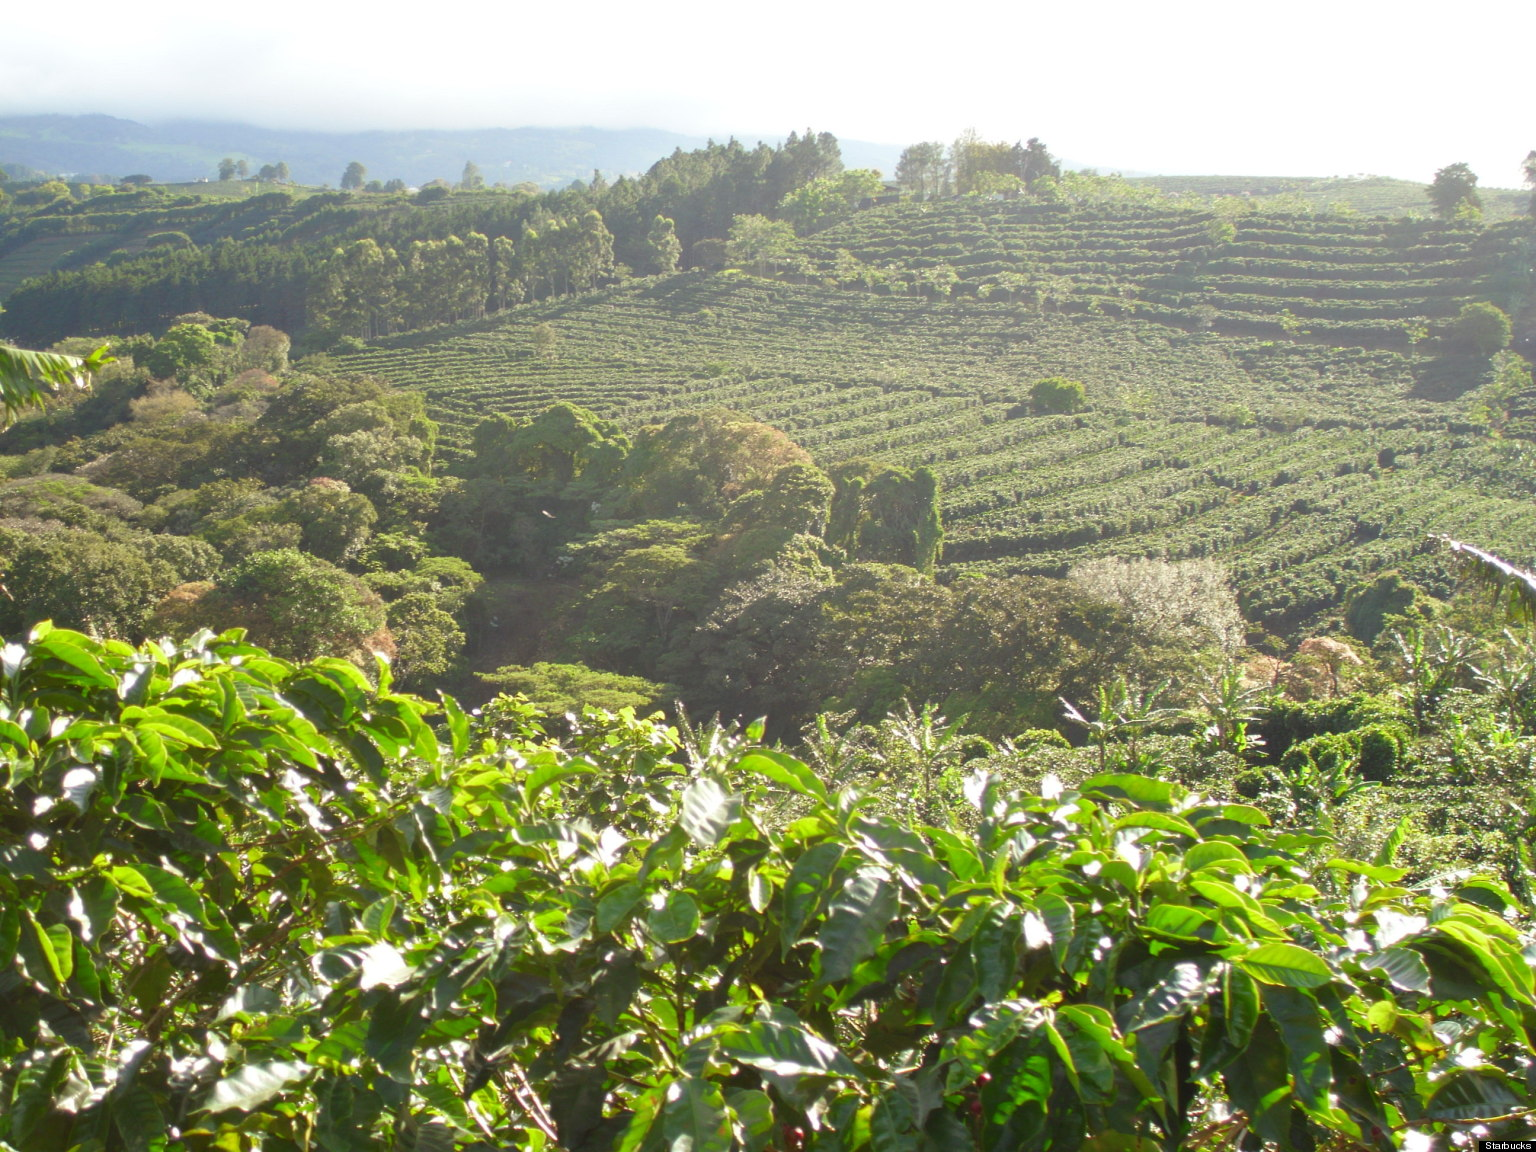 Starbucks To Start First Farm In Costa Rica To Cultivate